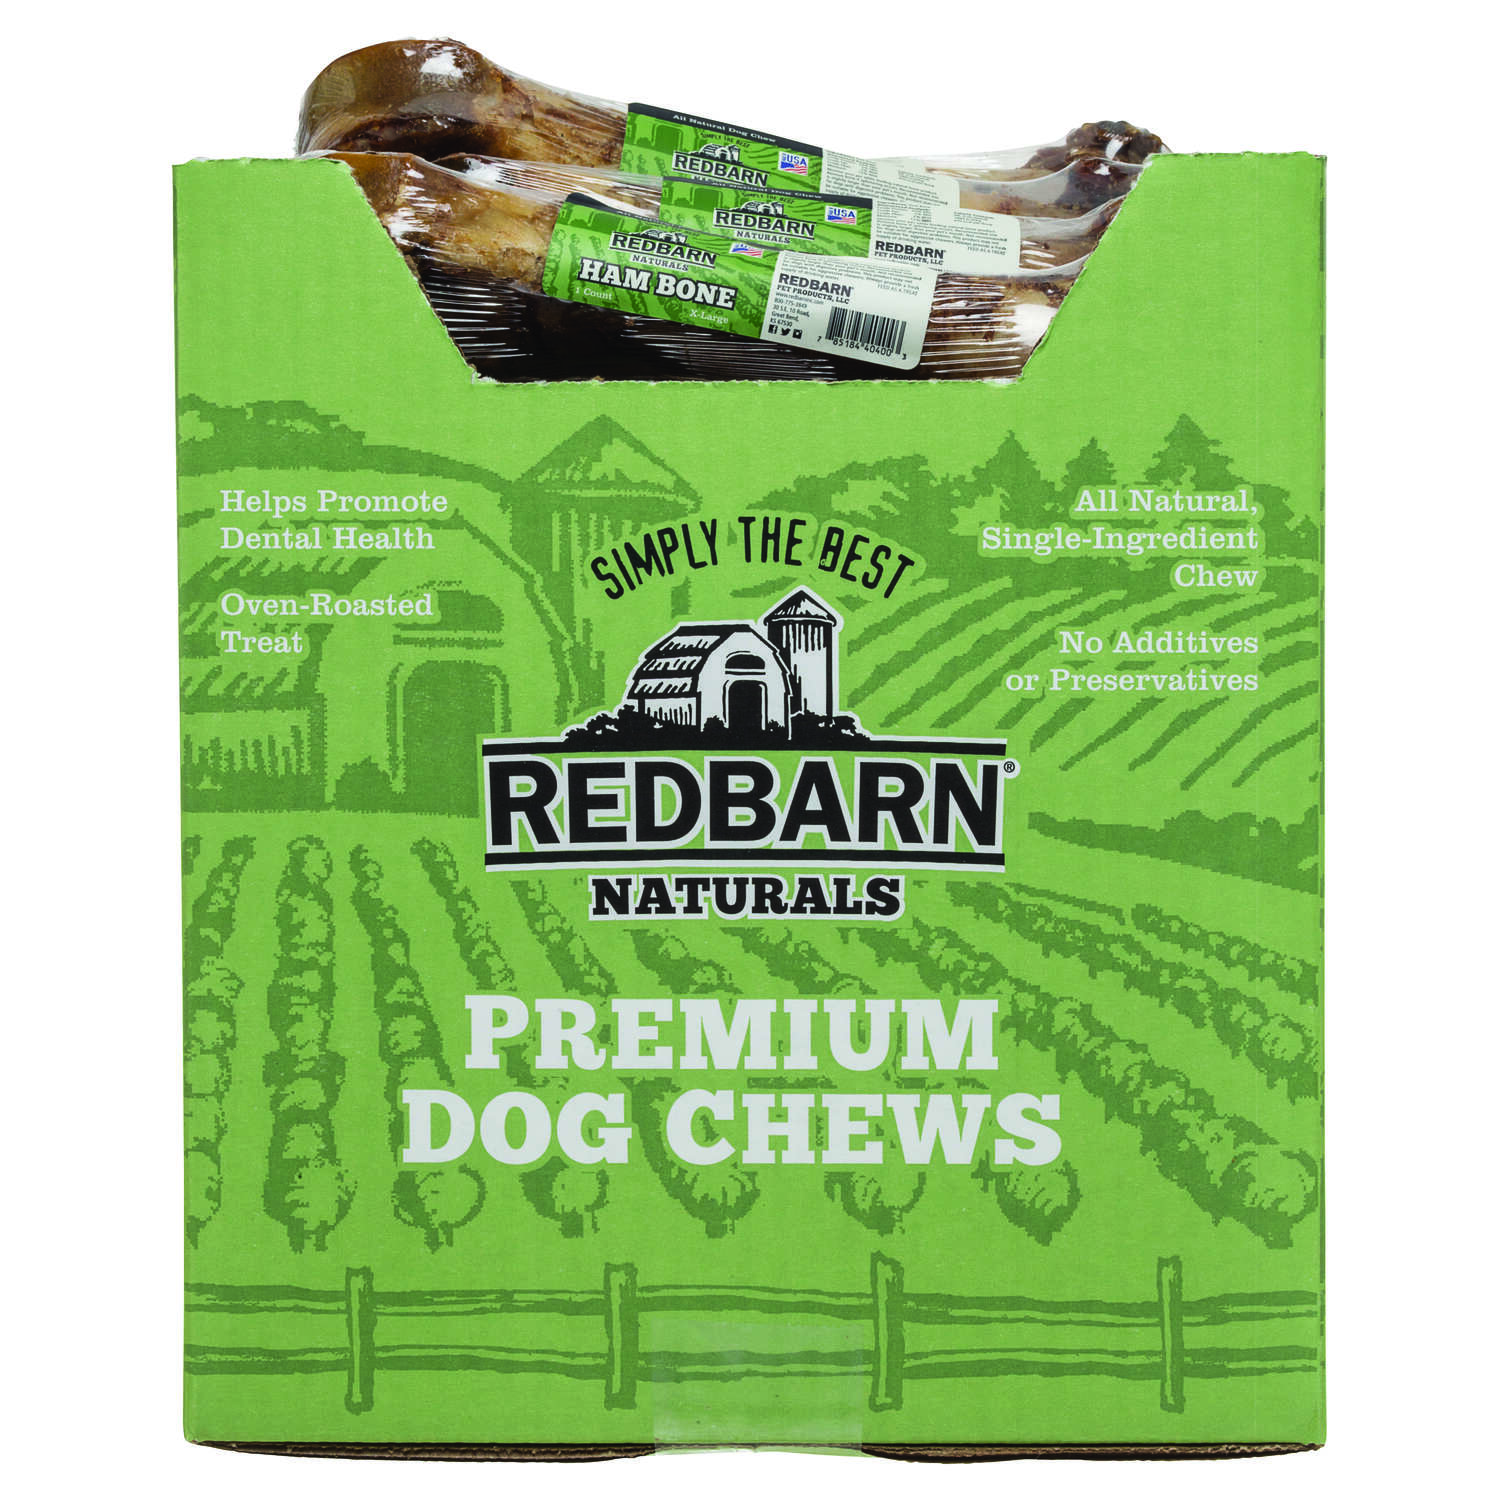 Redbarn  Naturals  Pork Ham Bone  Dog  Grain Free Bone  1 pk